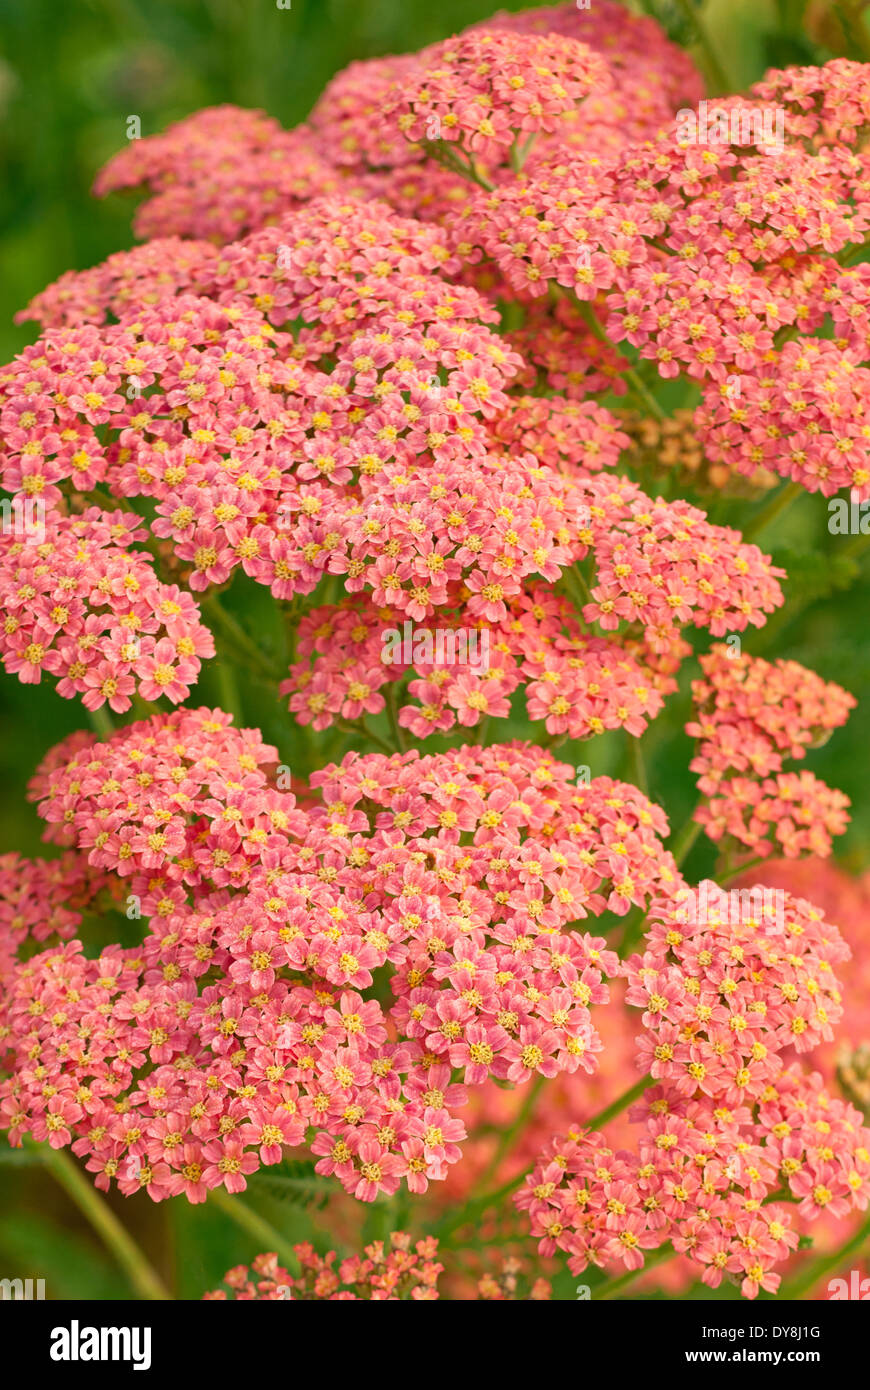 Close up of Achillea millefolium Peachy Seduction, Yarrow, Tutti Frutti Series. June. Summer. Salmon pink flowers. - Stock Image